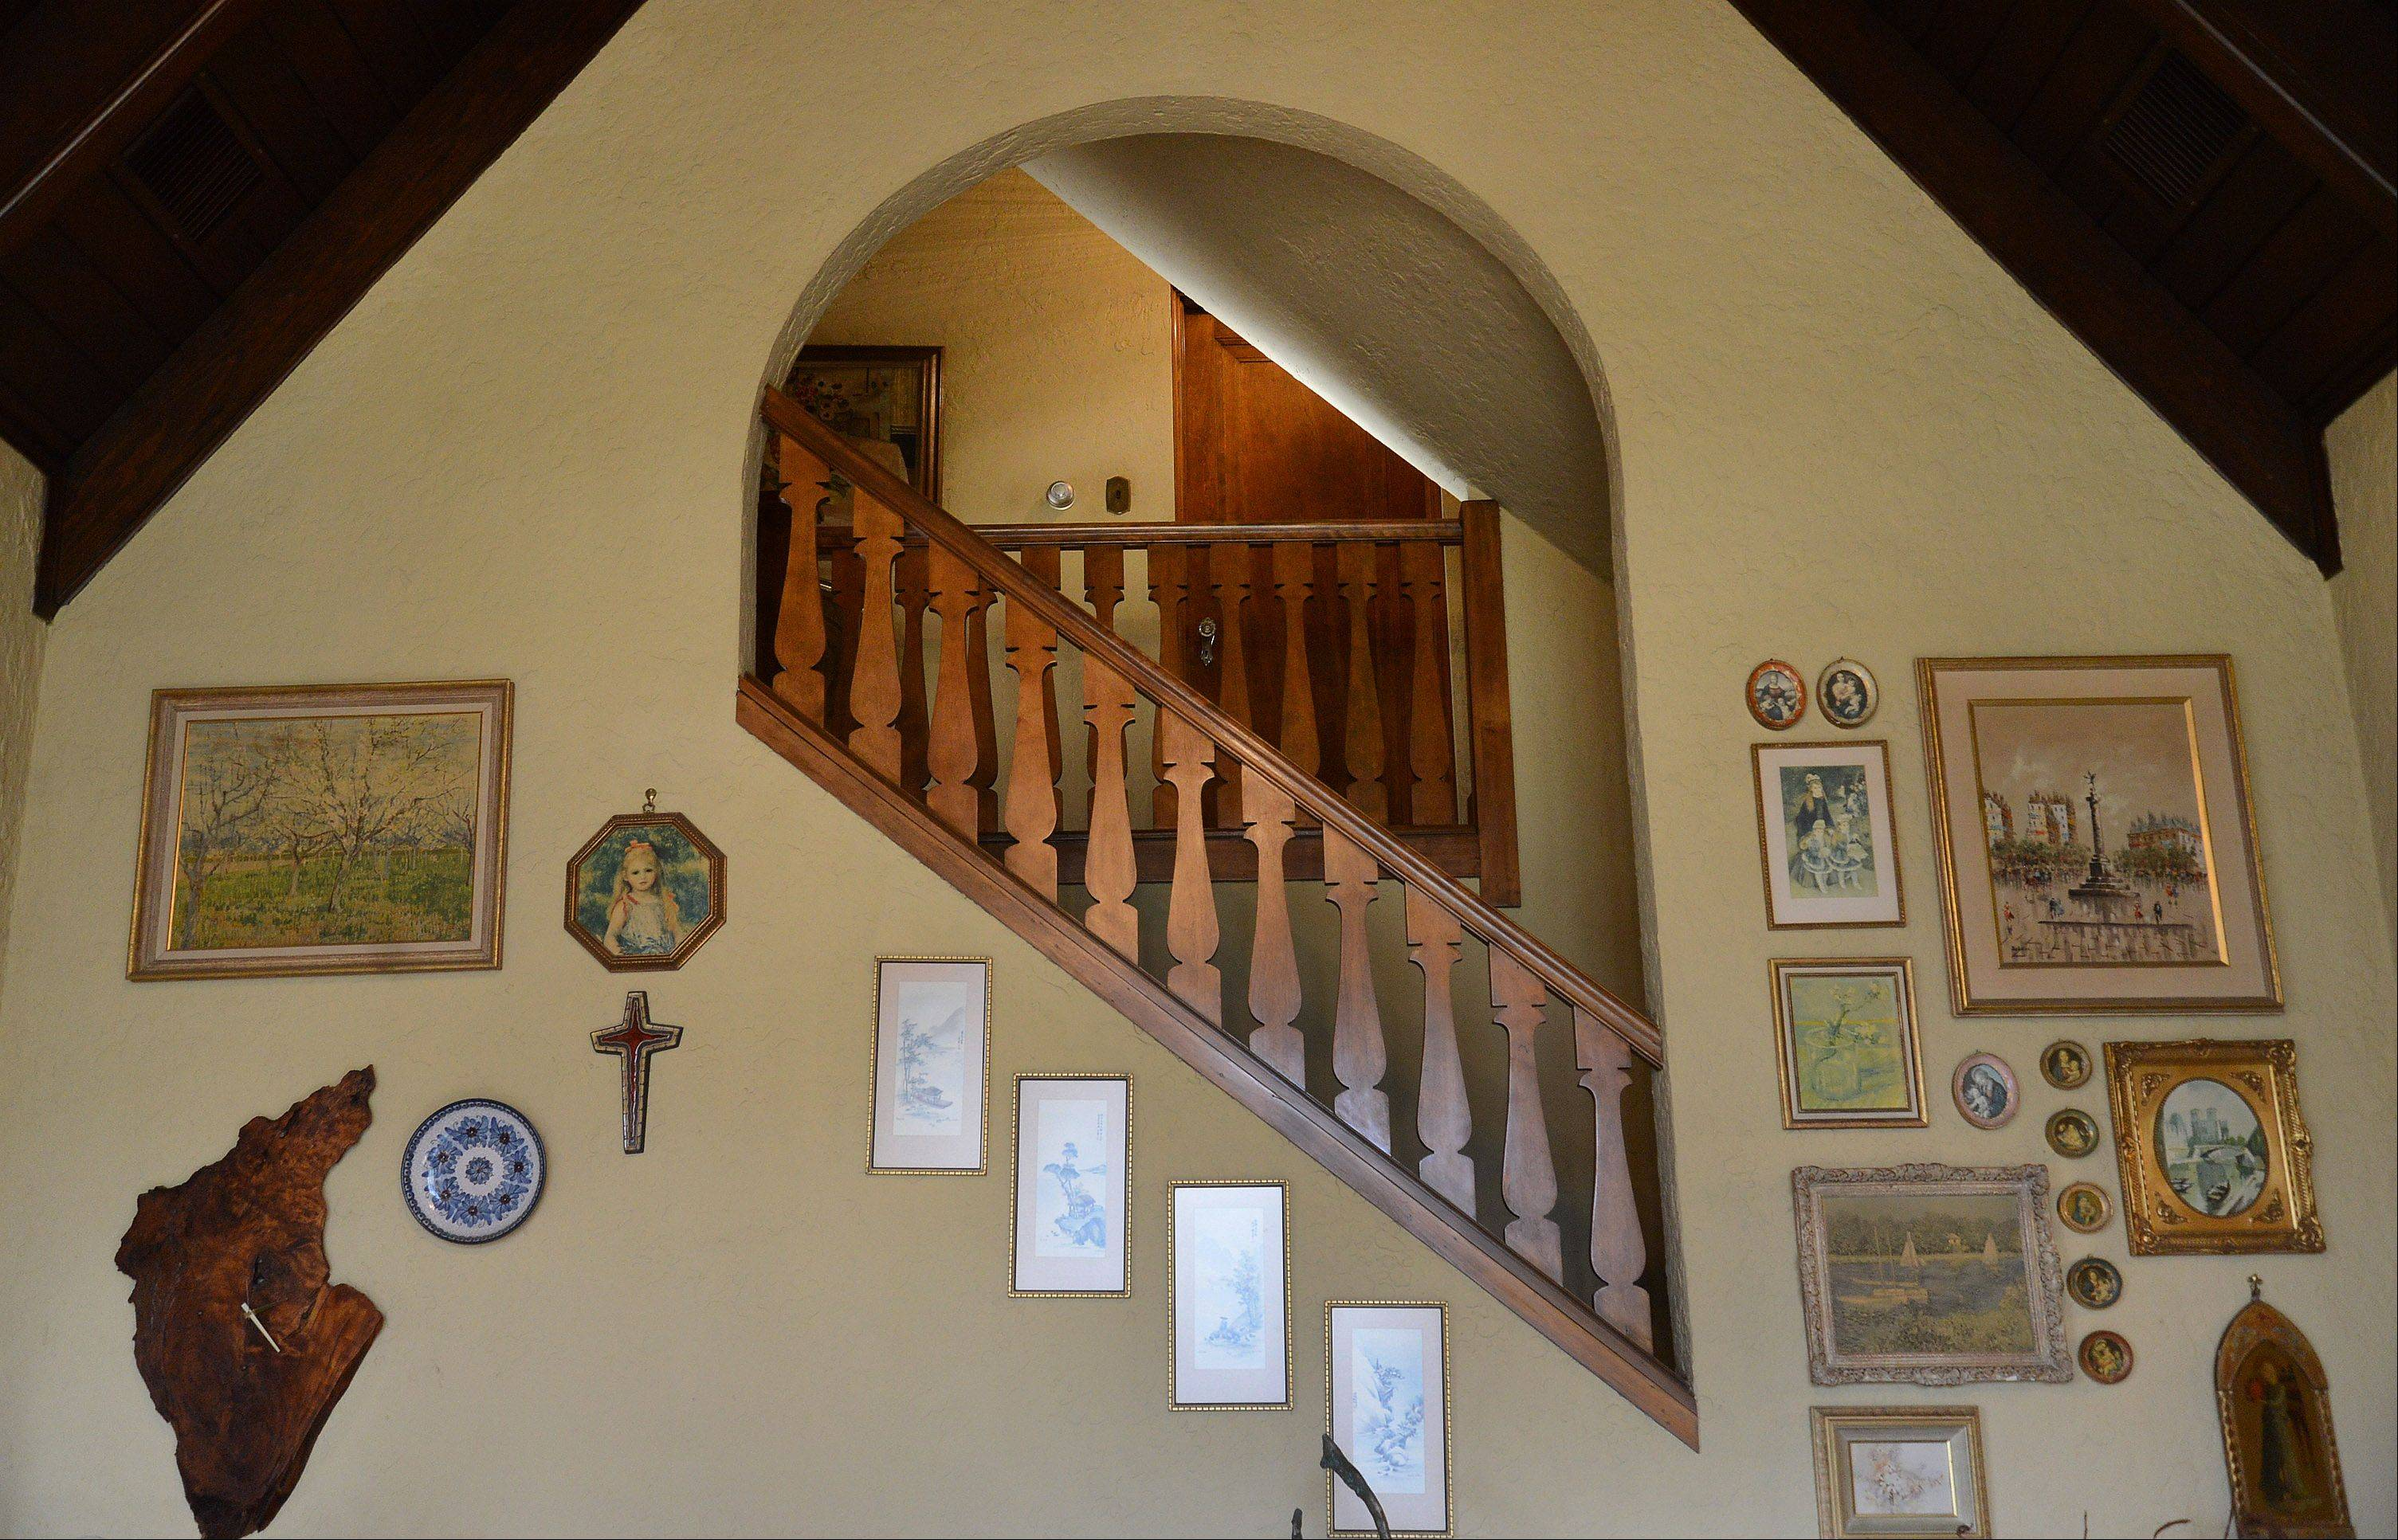 Stairway going upstairs The Moats home, a 1928 Cotswold cottage, that will be featured on this year's Mount Prospect Holiday Housewalk..